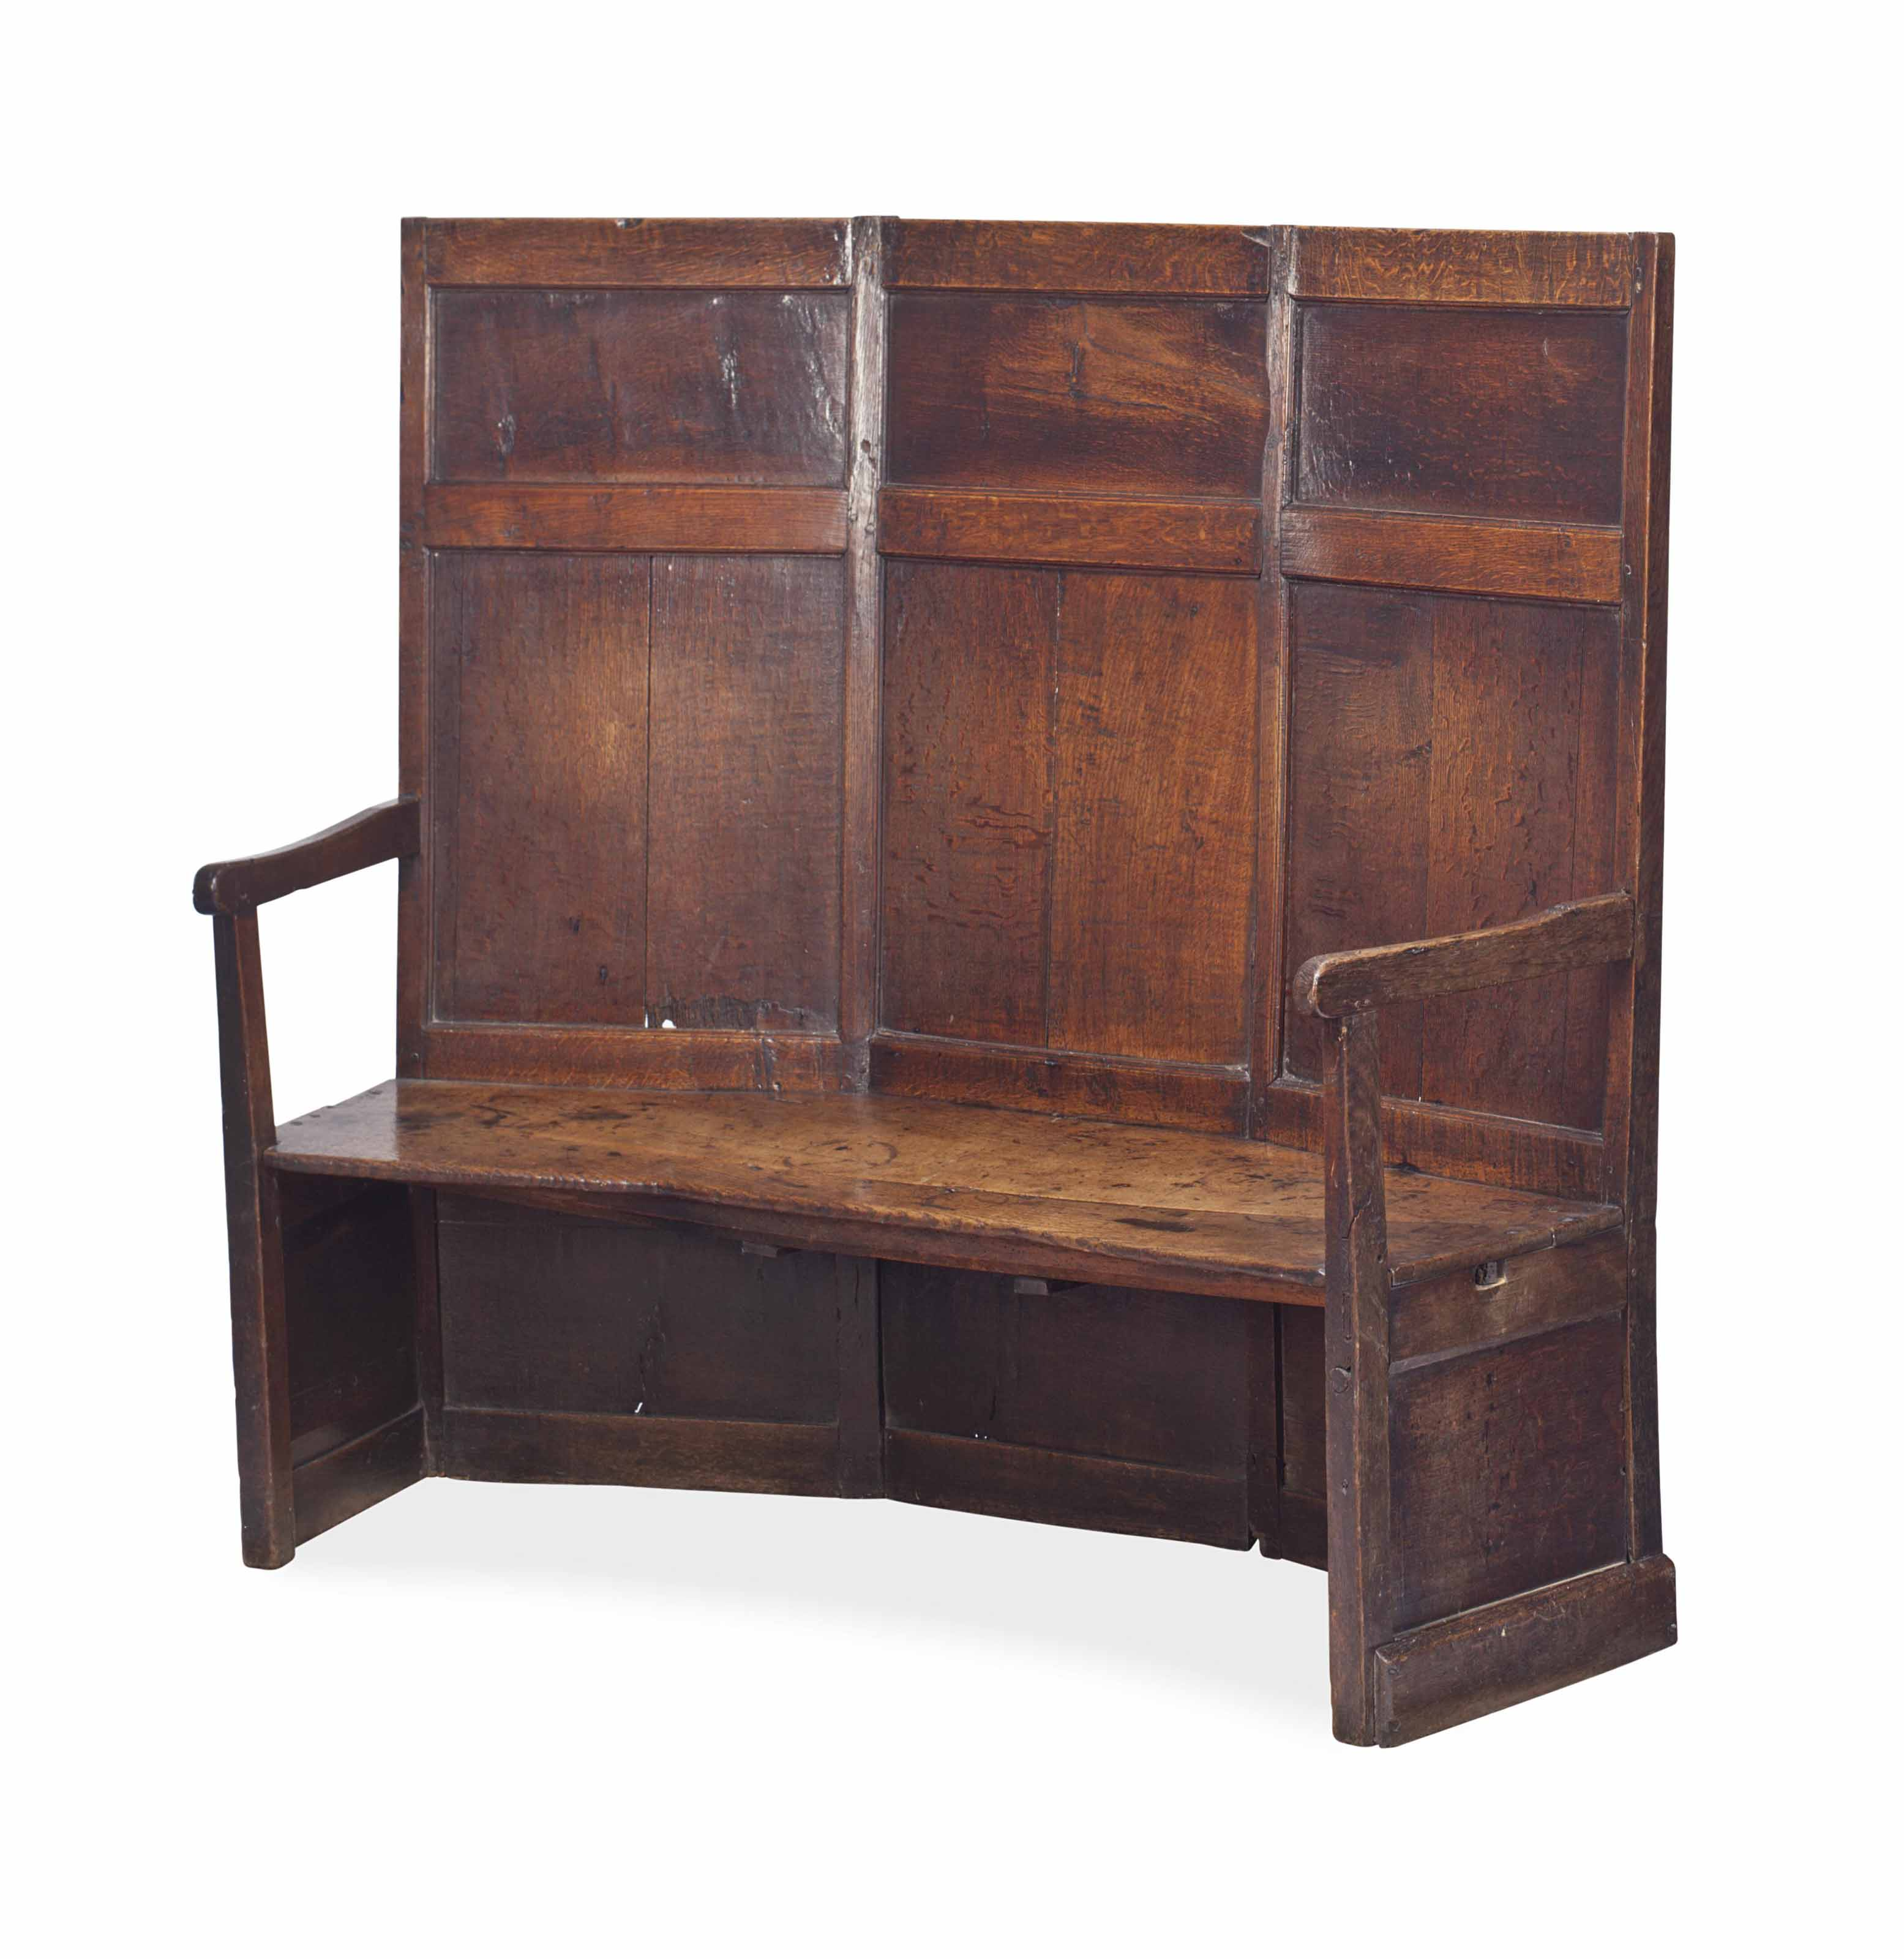 AN ENGLISH STAINED OAK SETTLE,